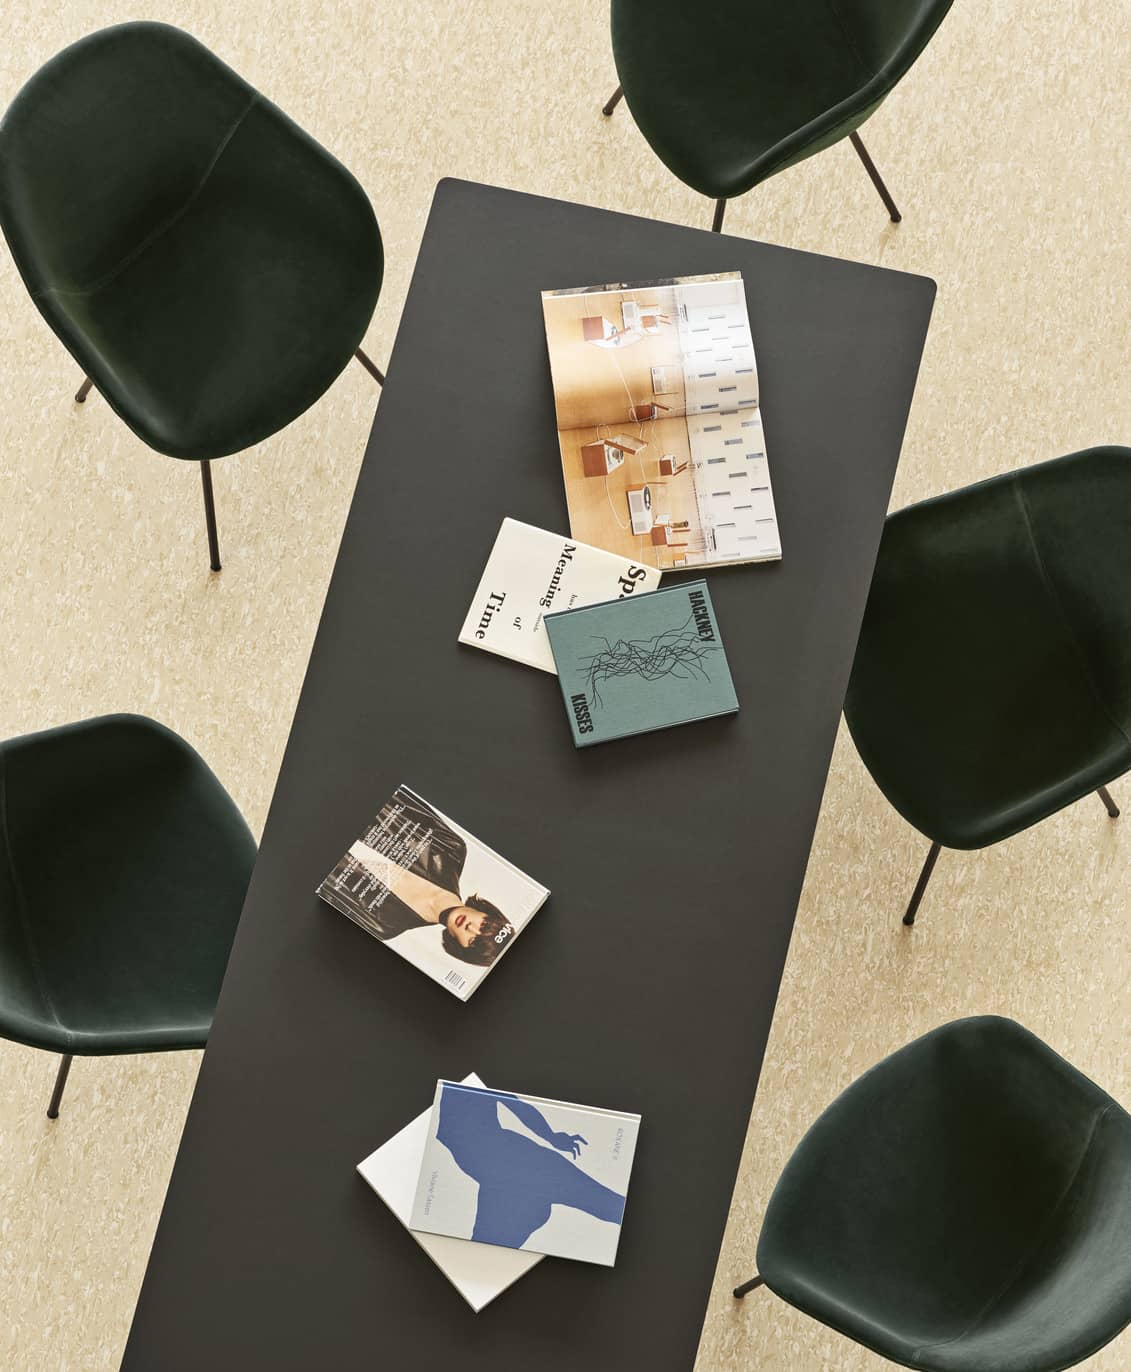 AAT-10-Table-black-frame-black-linoleum_AAC-127-Lola-dark-green-black-base